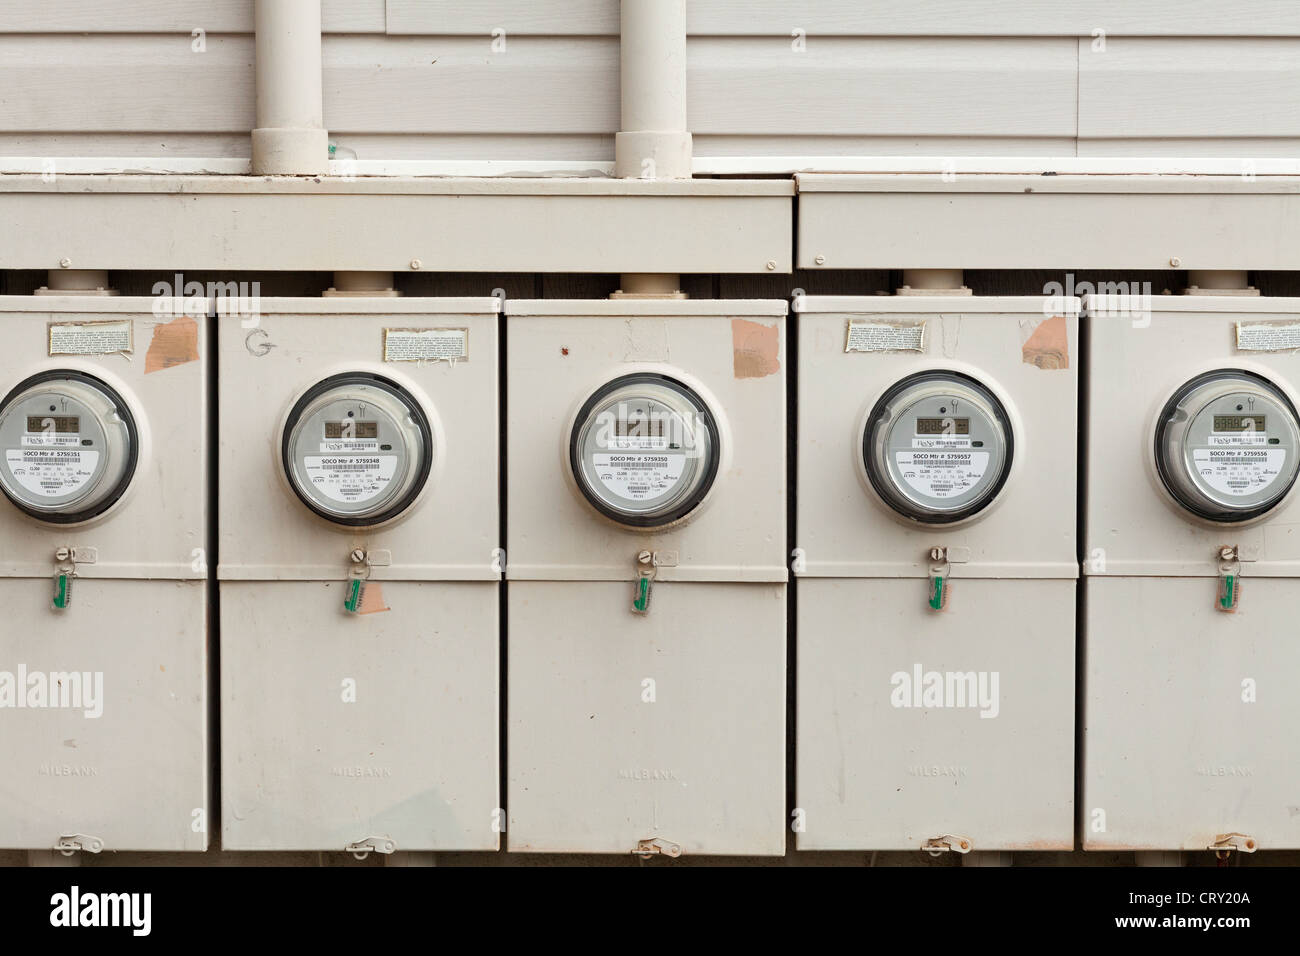 Row of Digital Electricity Meters at apartment complex - Stock Image